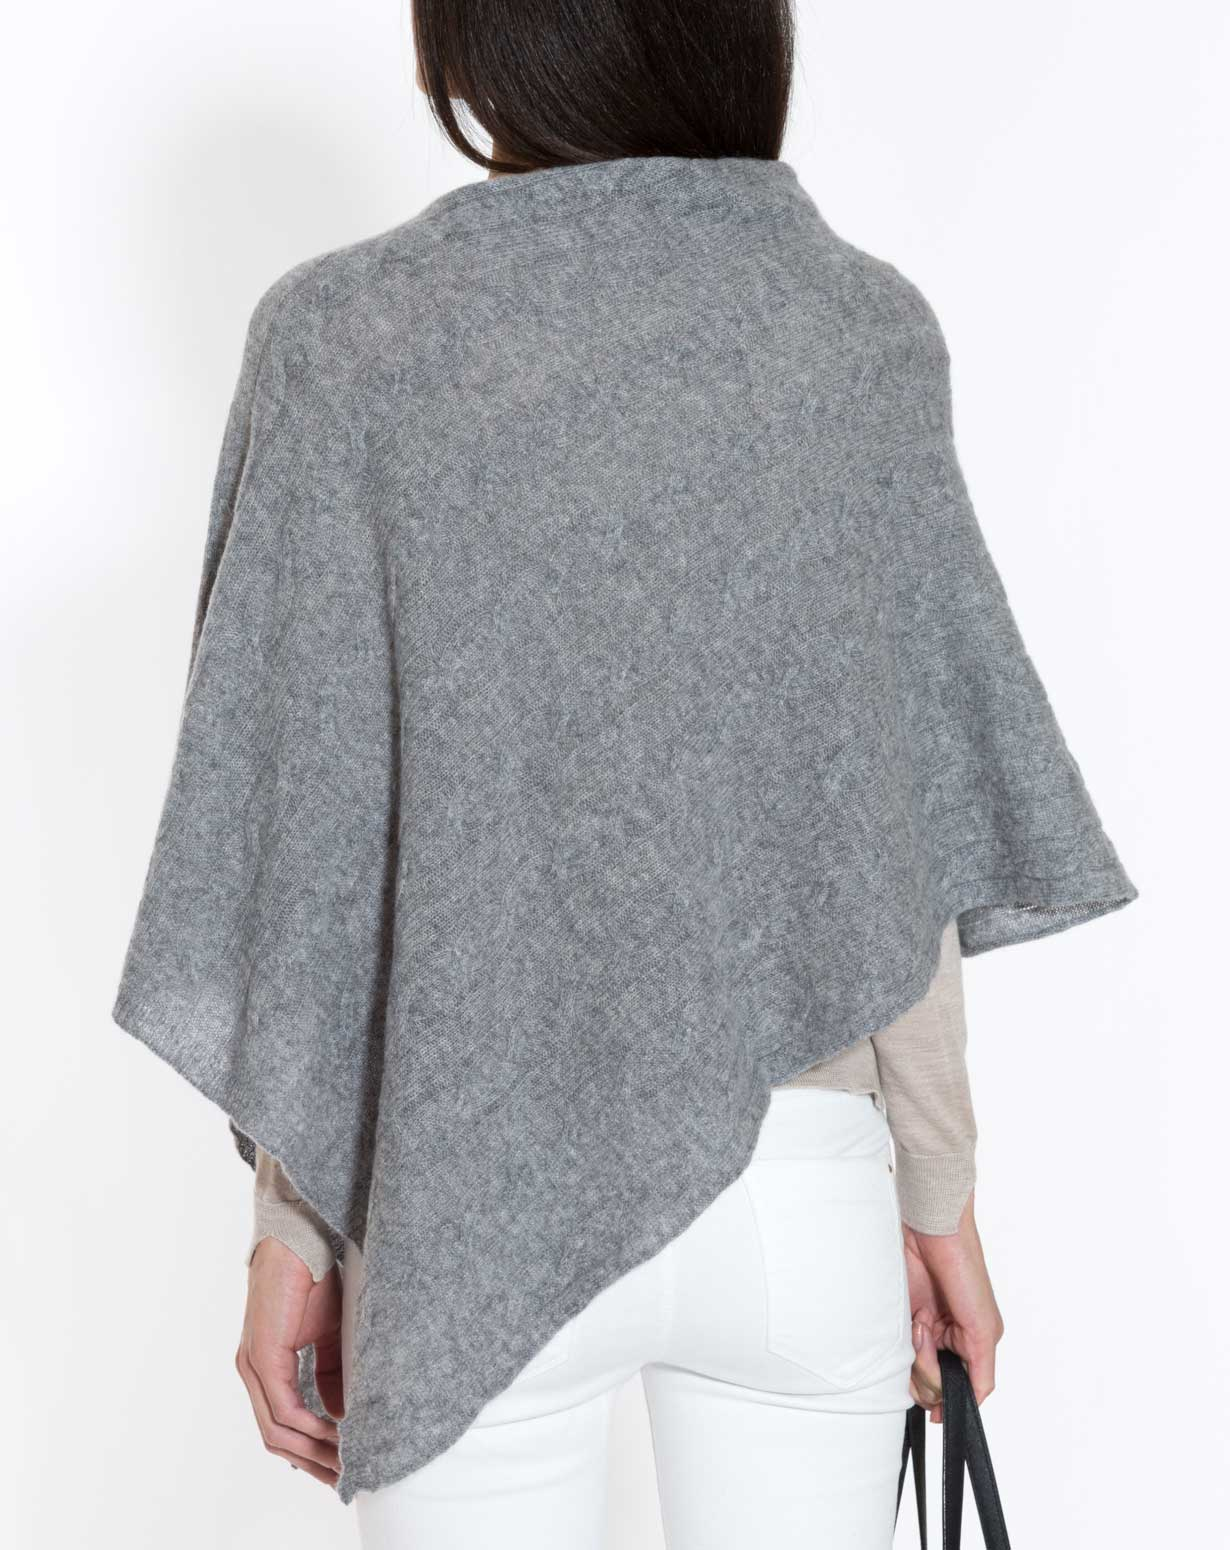 Knitting Pattern For Cashmere Poncho : Pure Cashmere Cable Knit Poncho MaisonCashmere